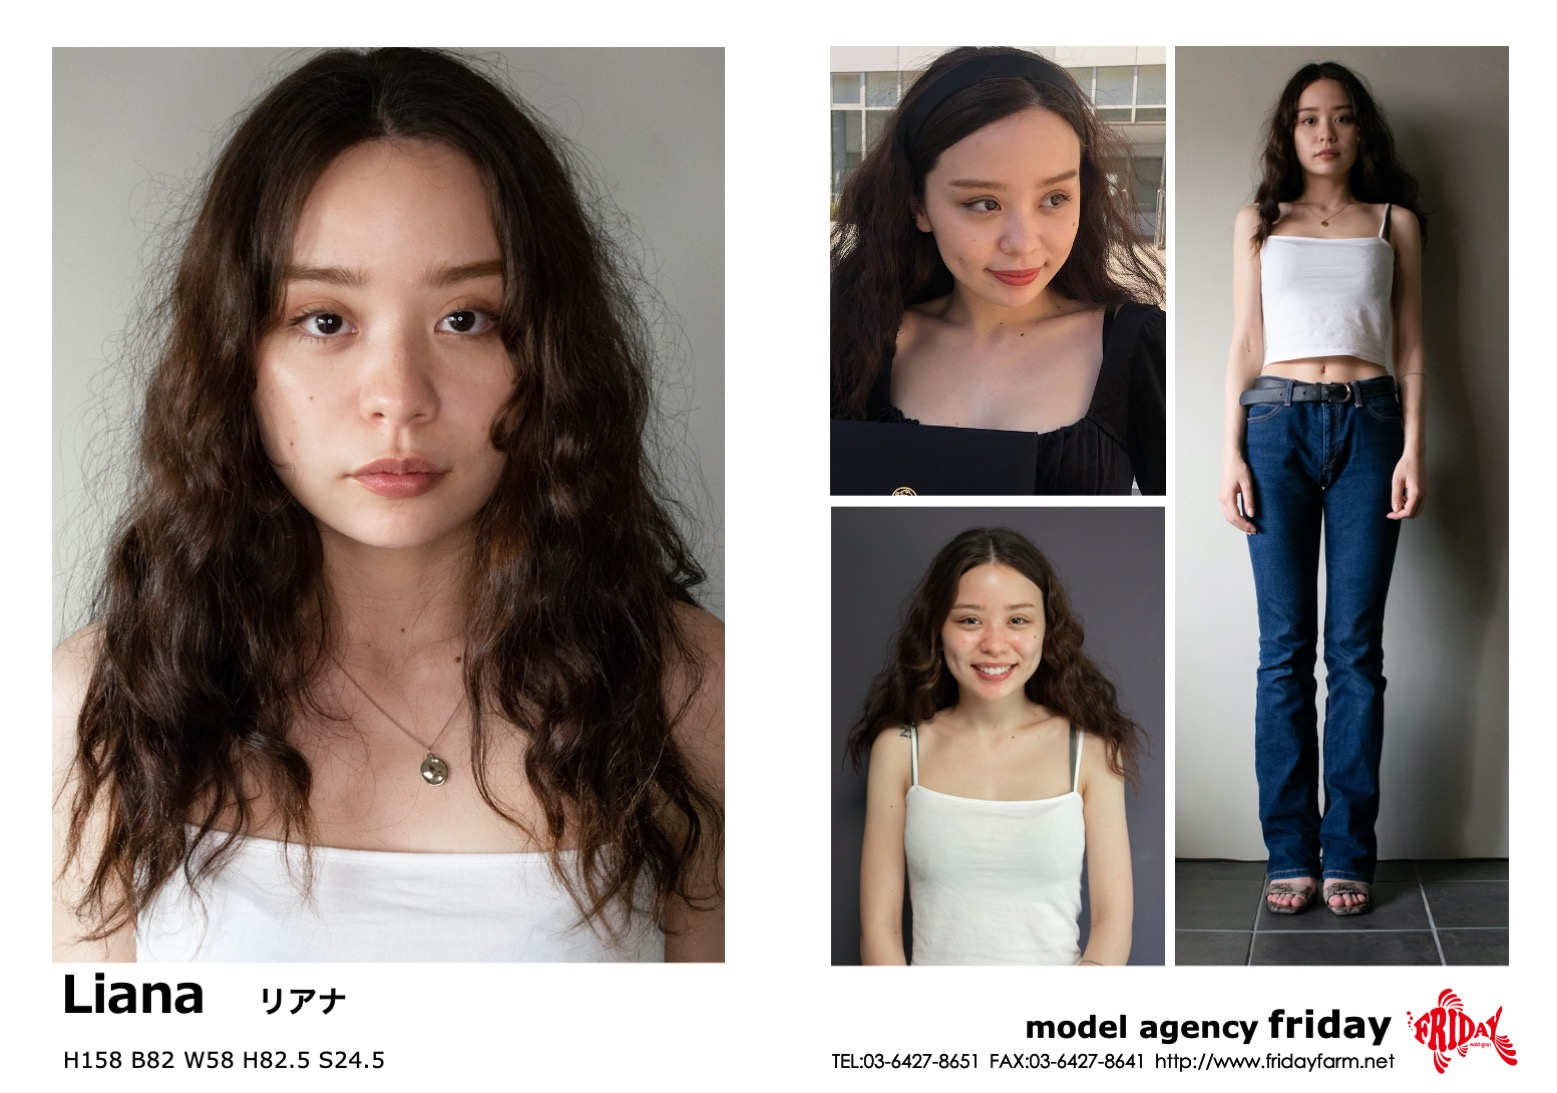 Liana - りあな | model agency friday